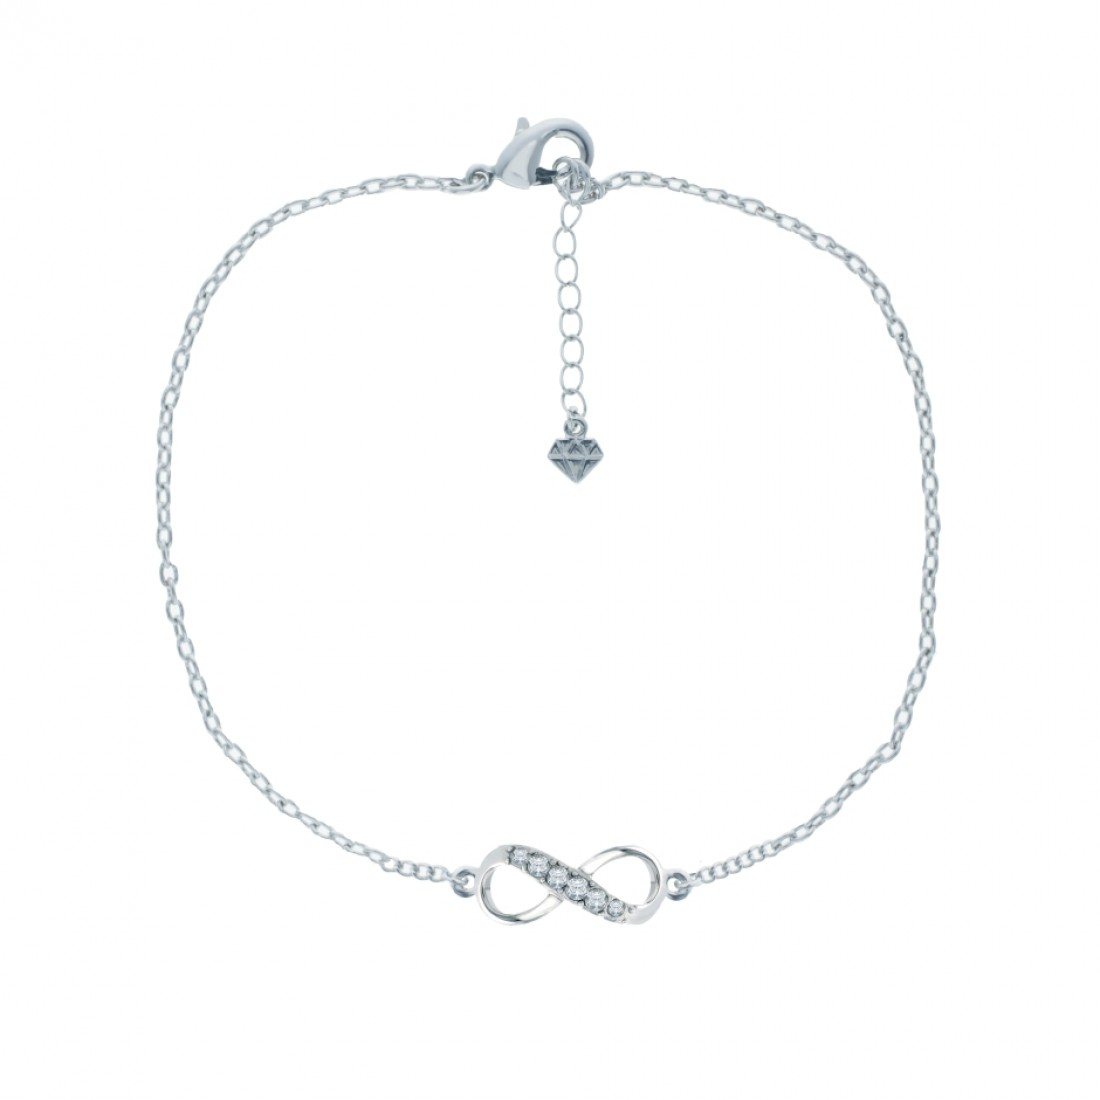 Infinity Anklet, Embellished with Crystals from Swarovski®